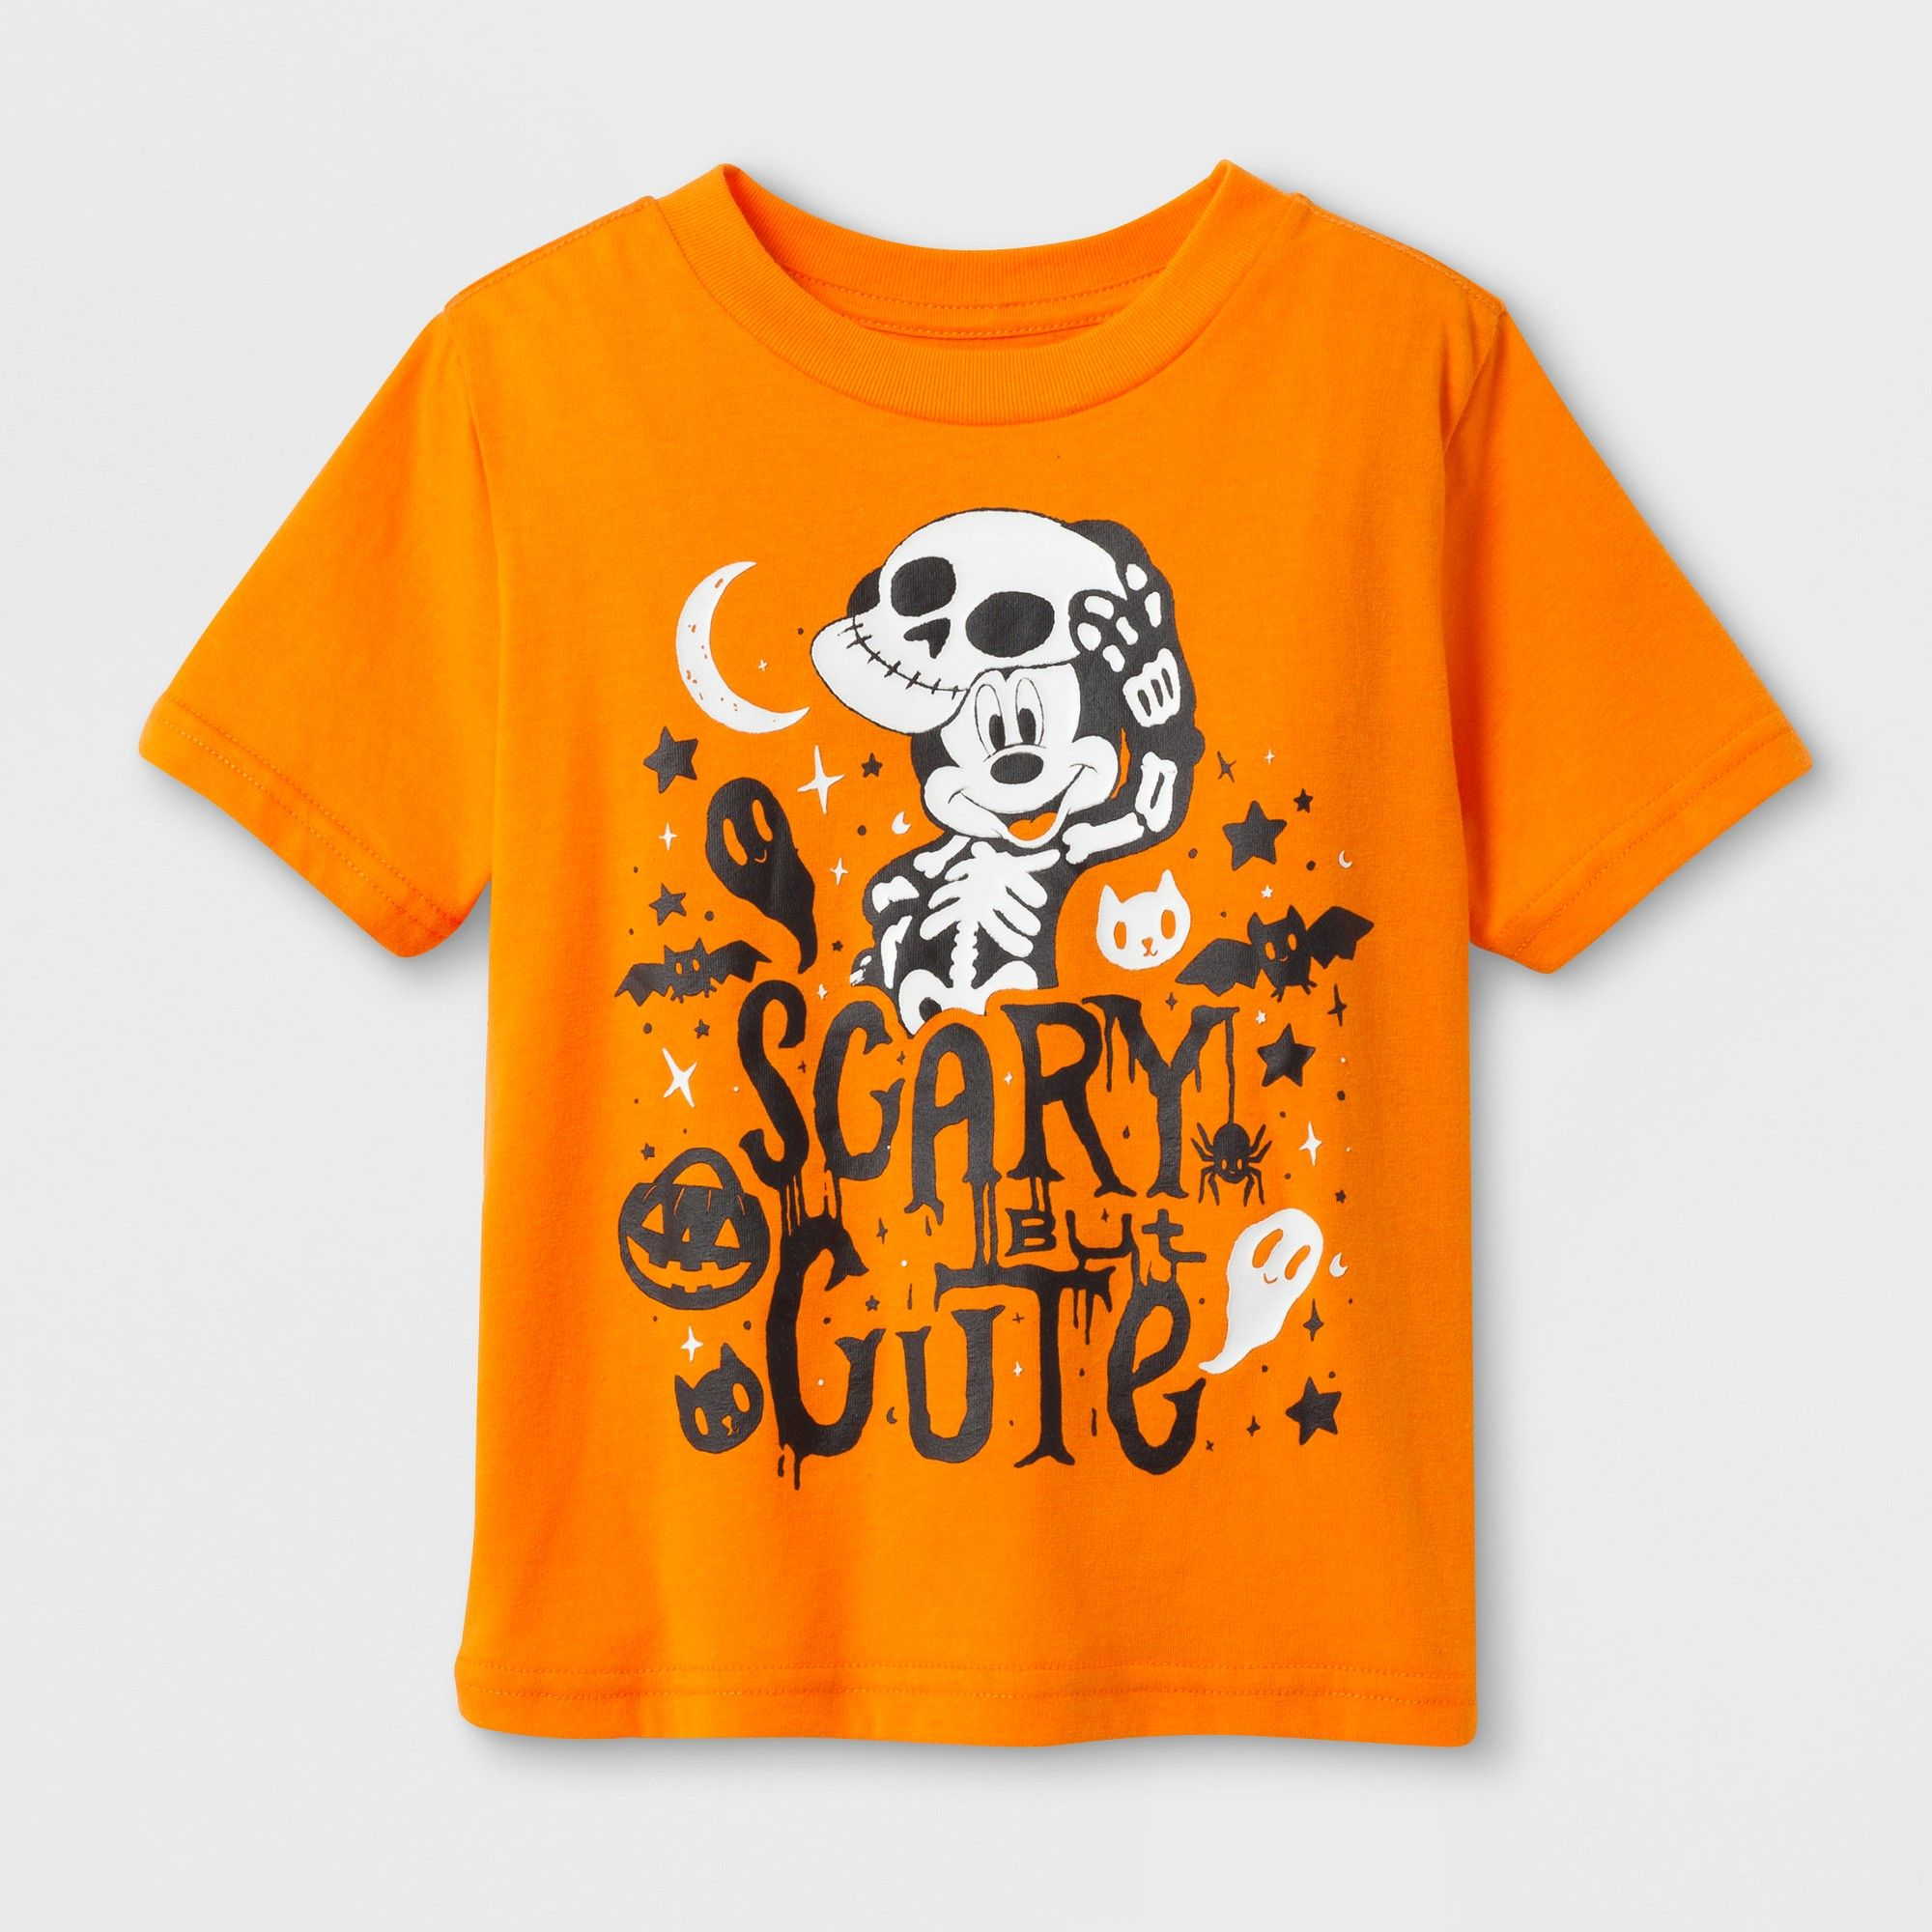 e6dfc93b5 Mickey Mouse Toddler Boys' 'scary BUT Cute' Halloween Short Sleeve T-Shirt  - Orange 2T